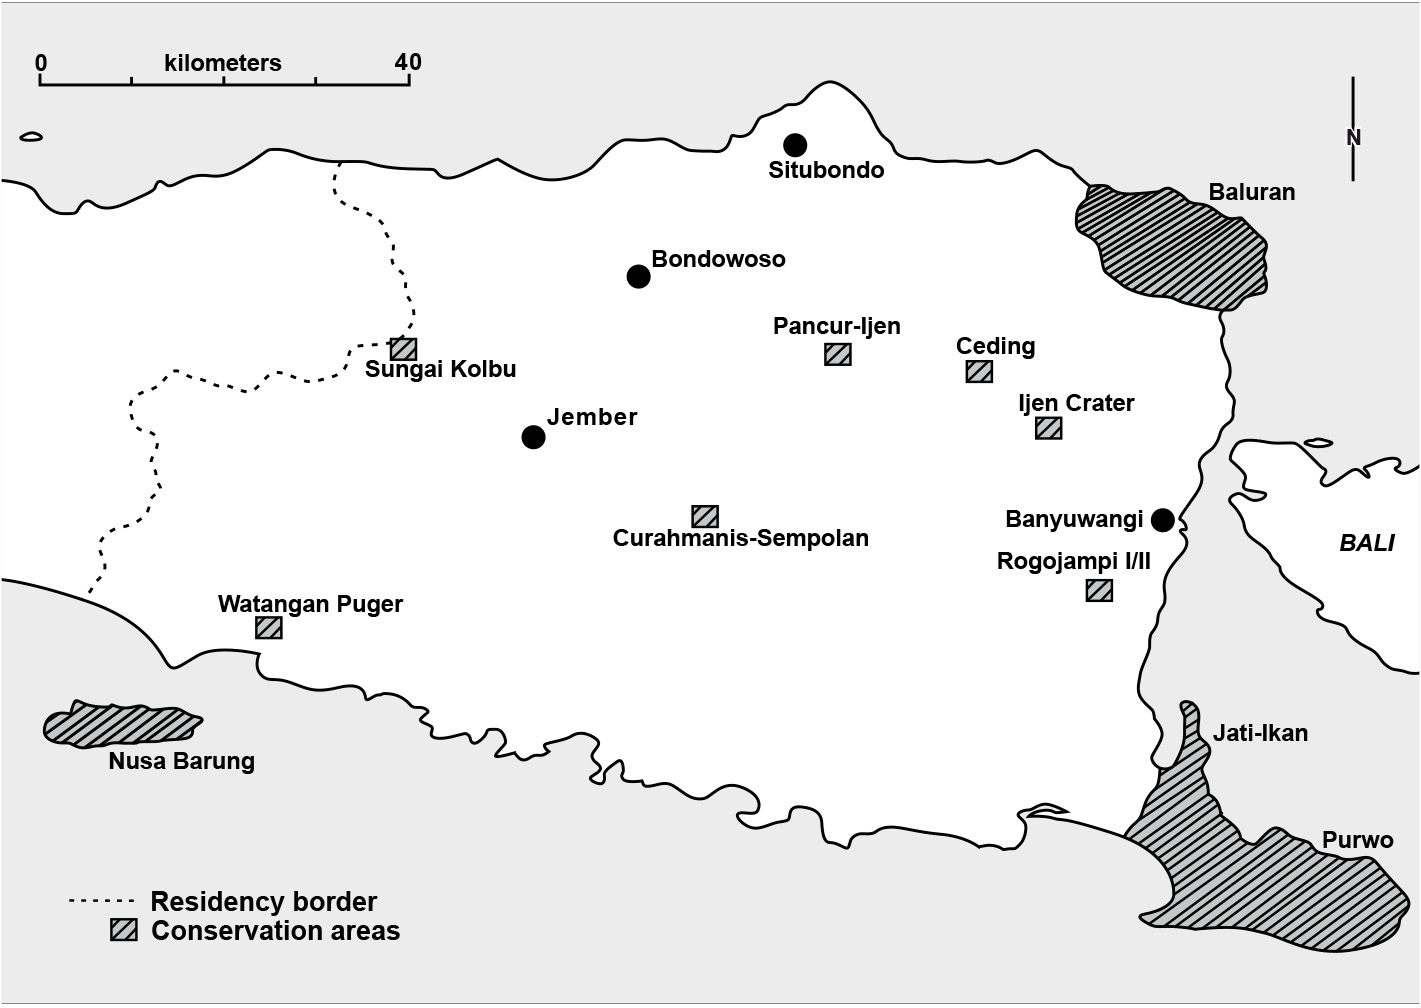 Nature Conservation in a Frontier Region of Java during the Colonial